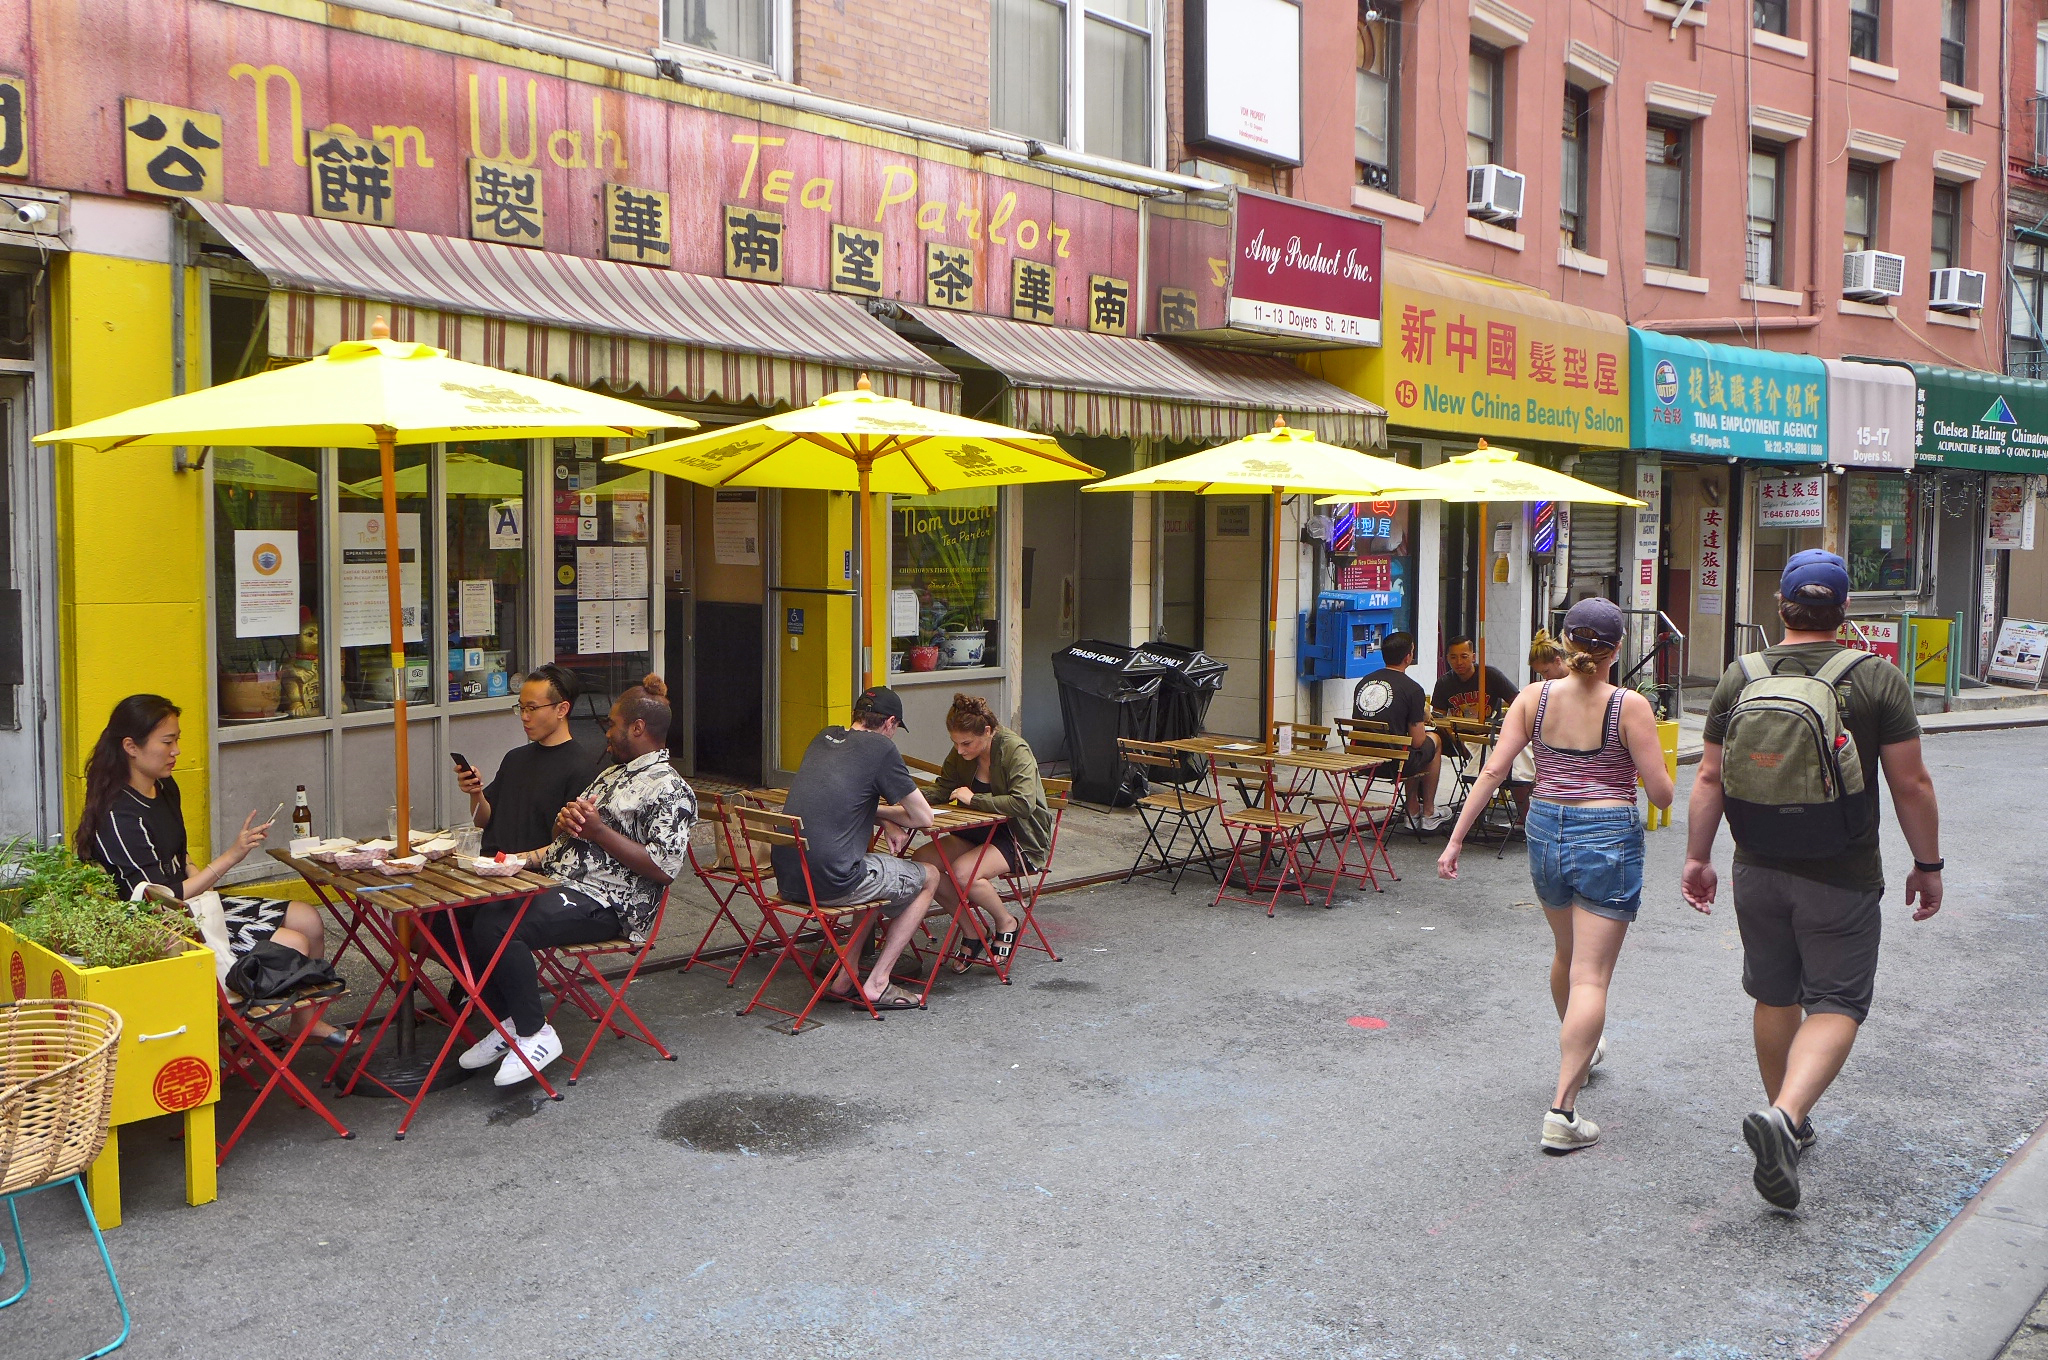 A restaurant with a faded sign and tables set out in front under yellow umbrellas.